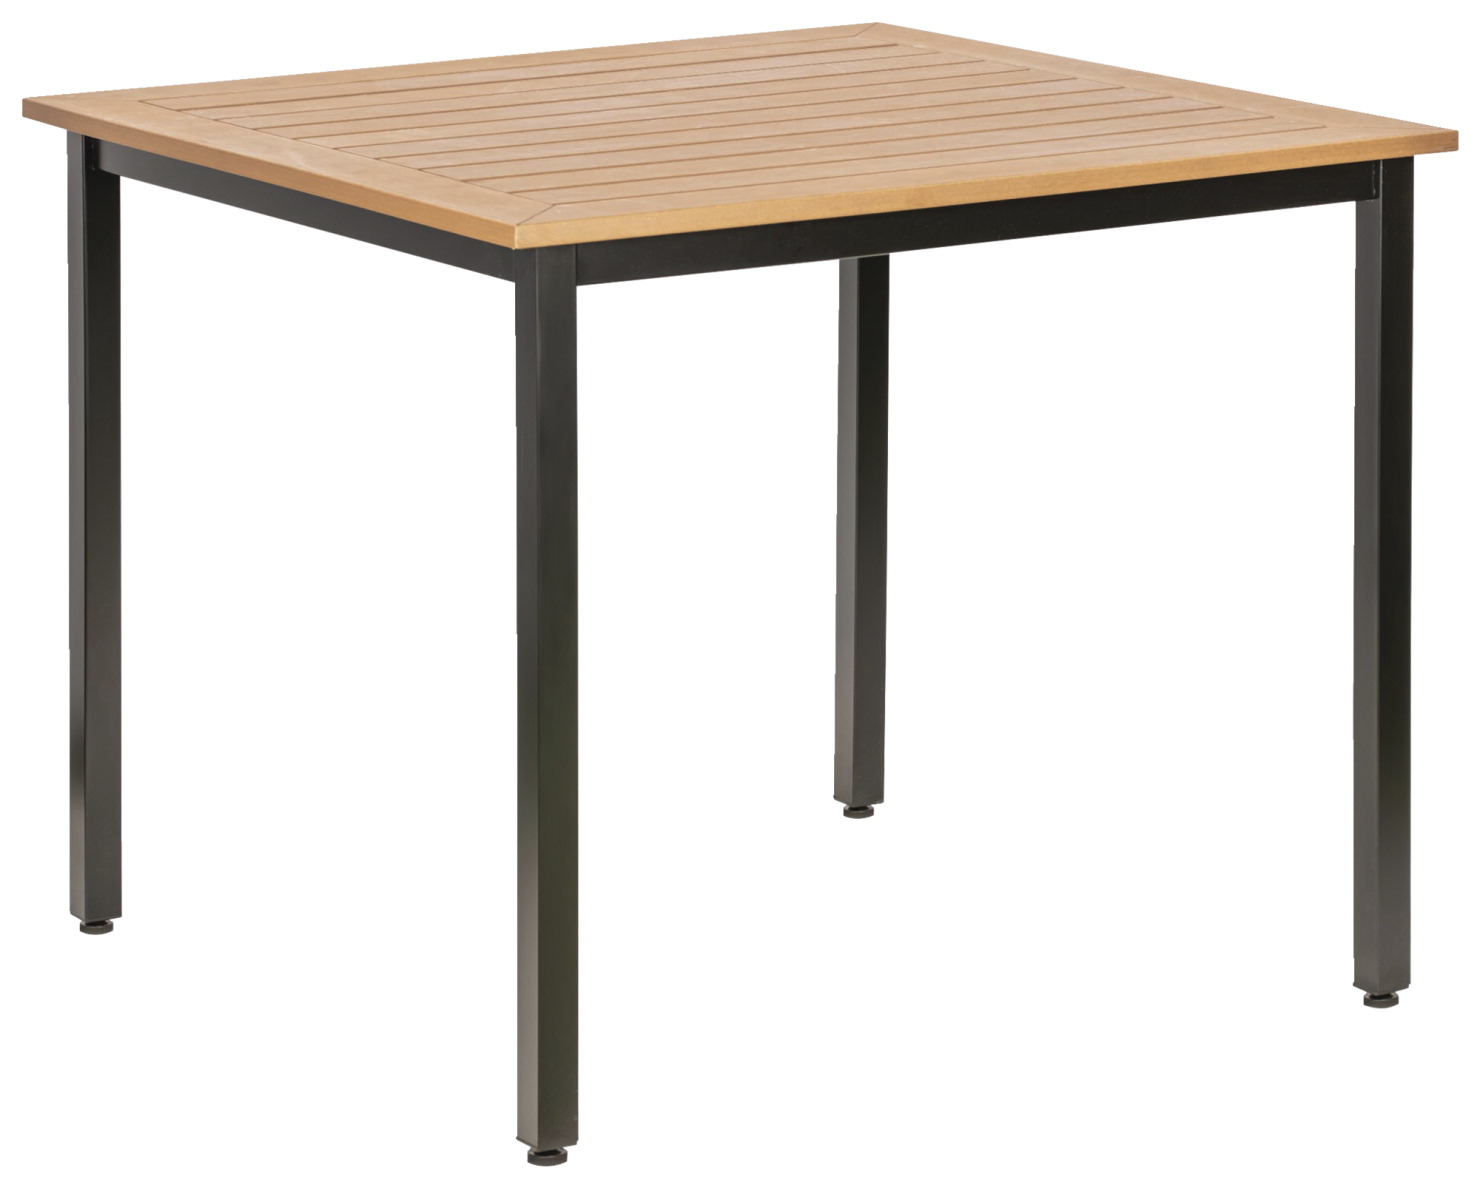 Lorell Teak Outdoor Table -- Table, Outdoor, Faux Wood, 36-5/8 x 36-5/8 x 30-3/4 Inches. Teak/Black.